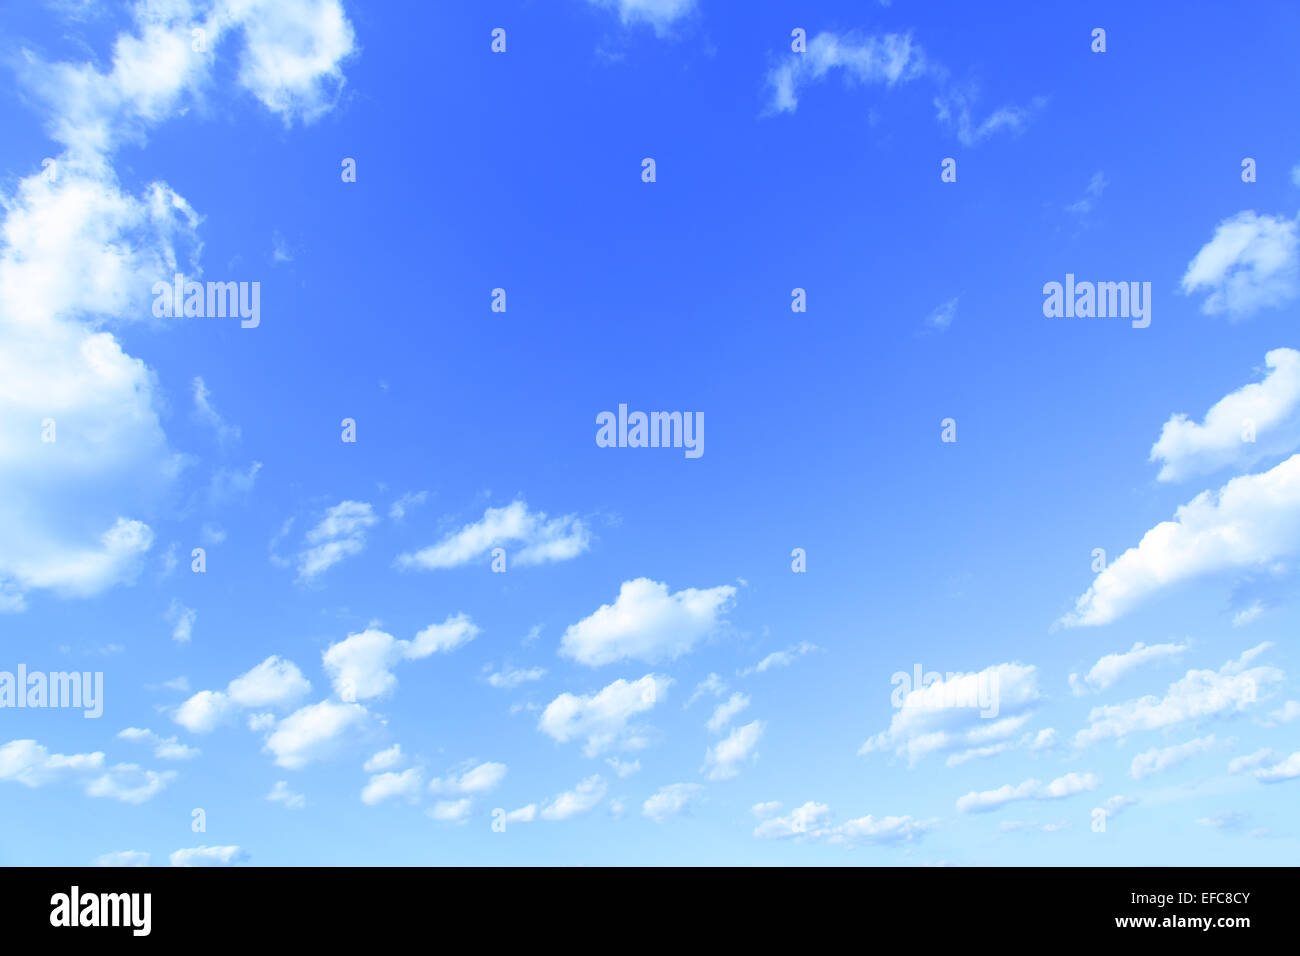 Blue sky, may be used as background - Stock Image